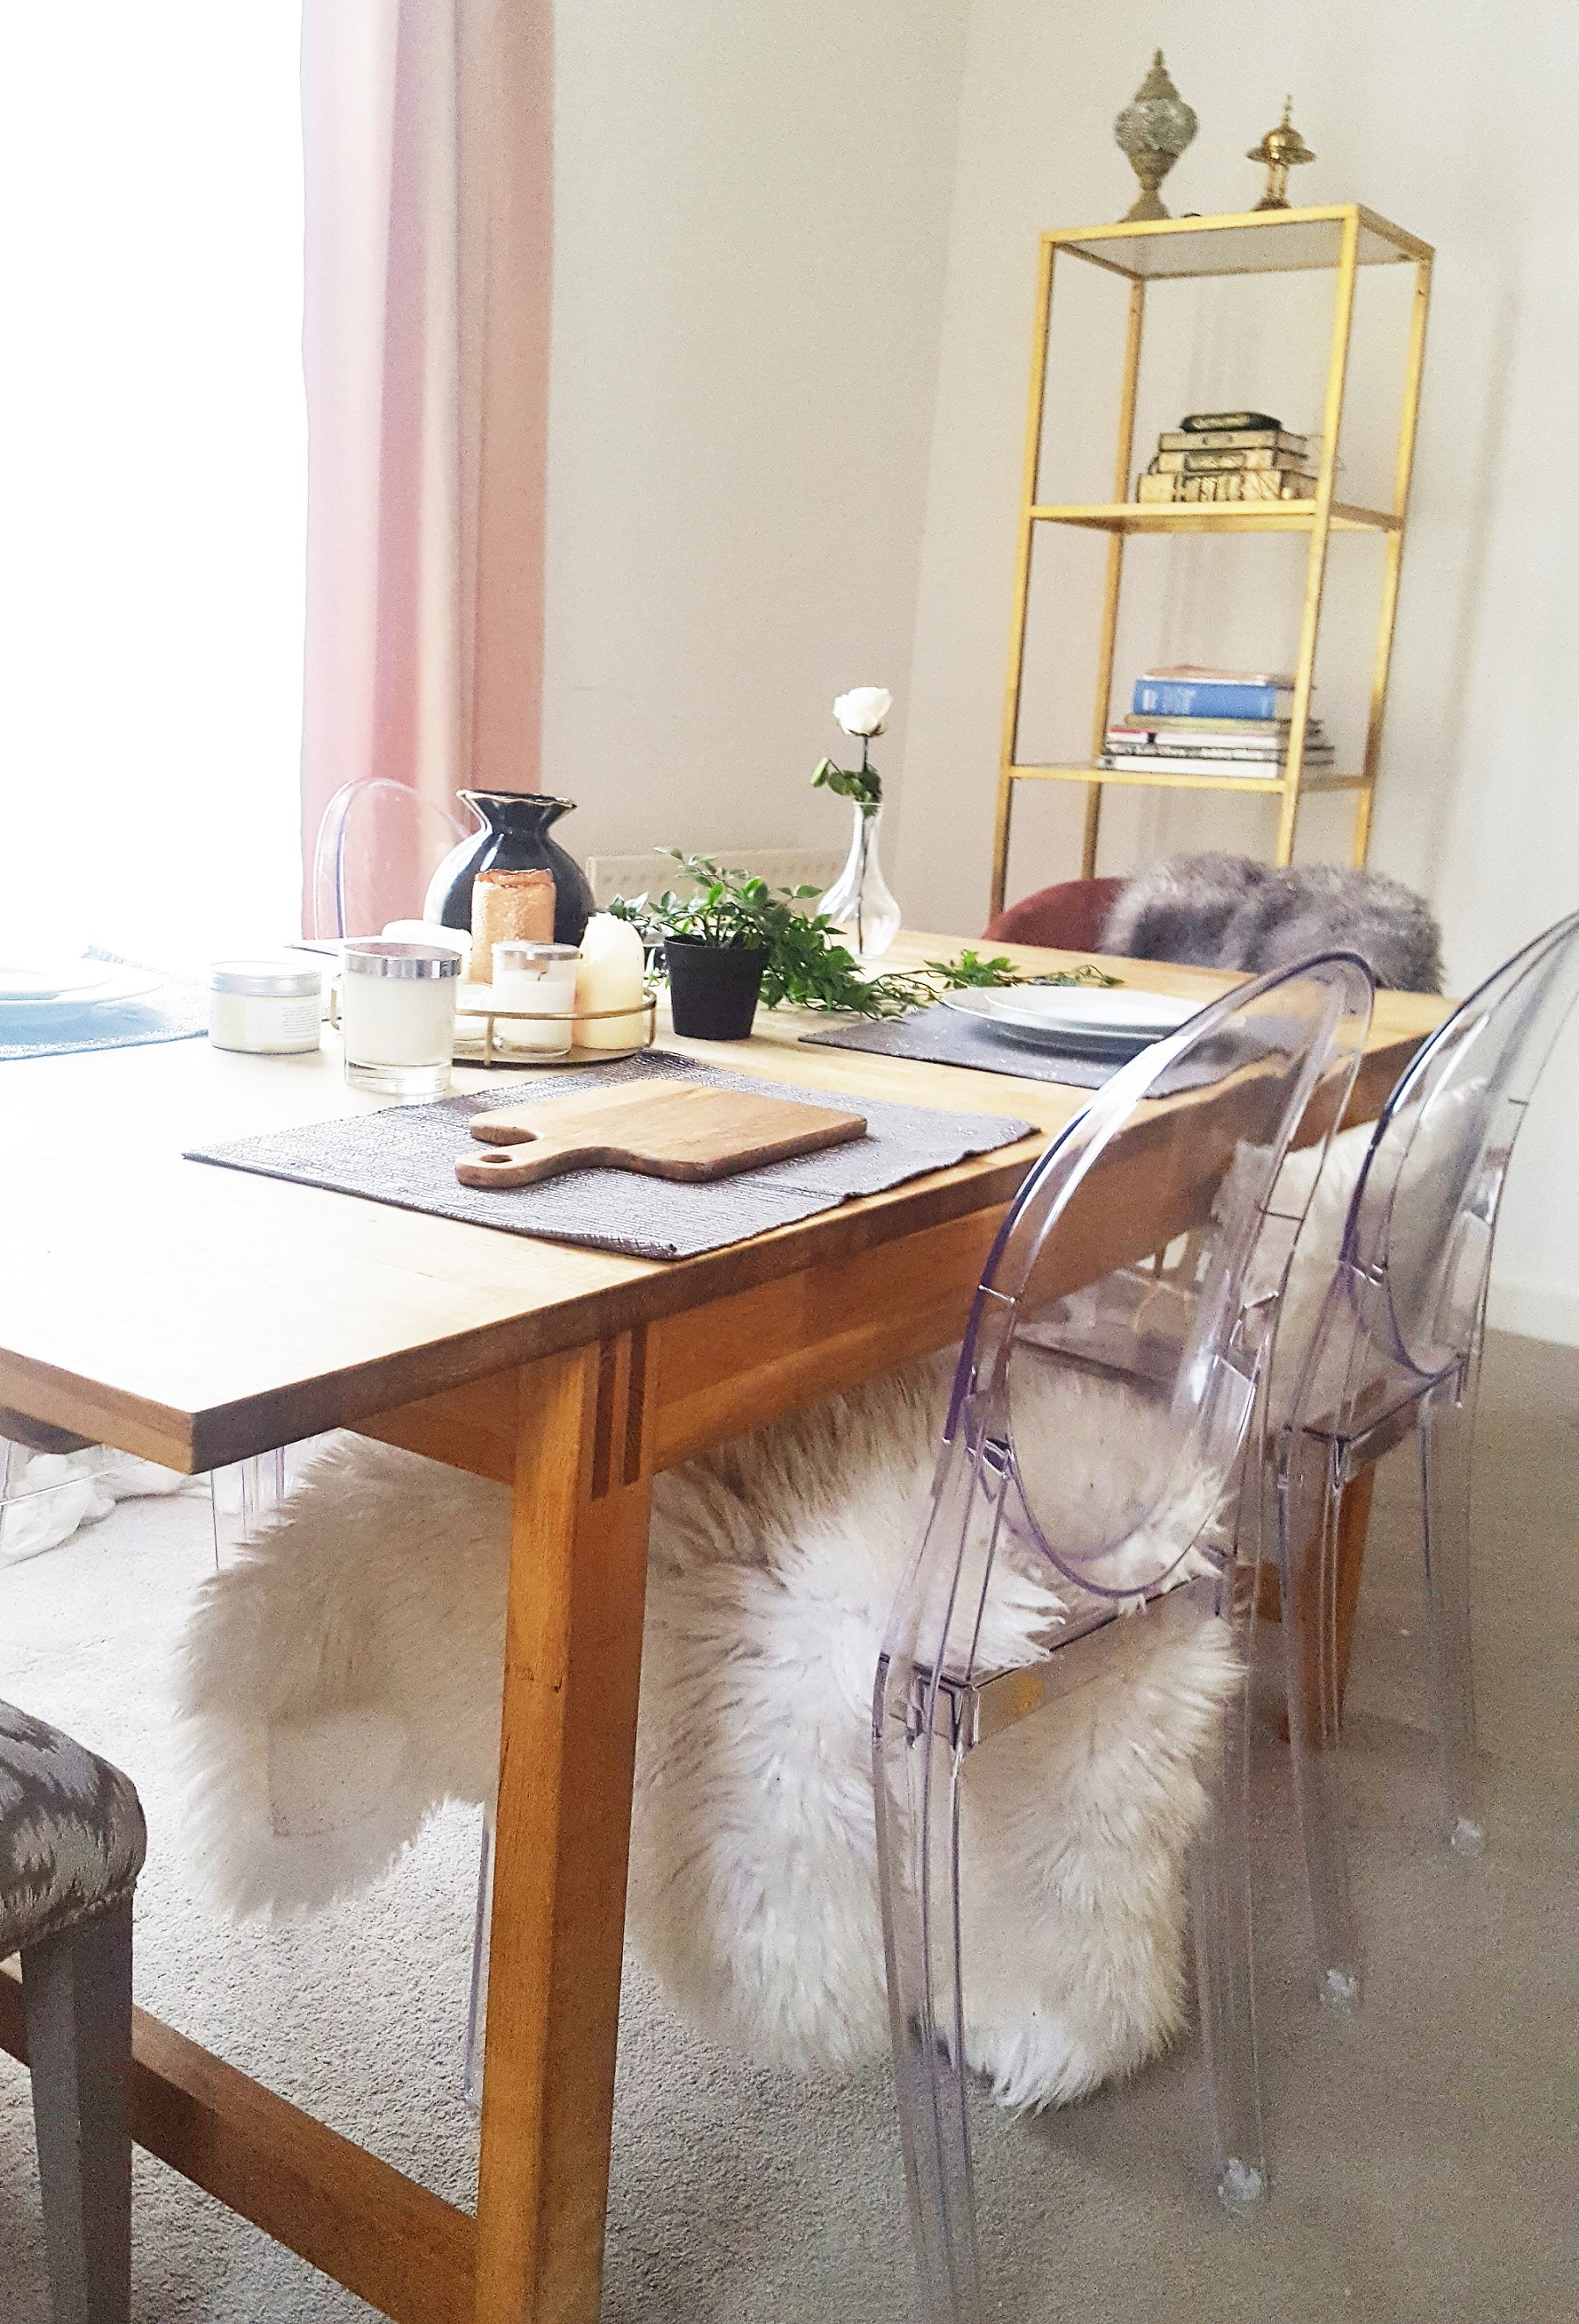 Step-Inside-My-Handbag-Dining-Room-Ideas